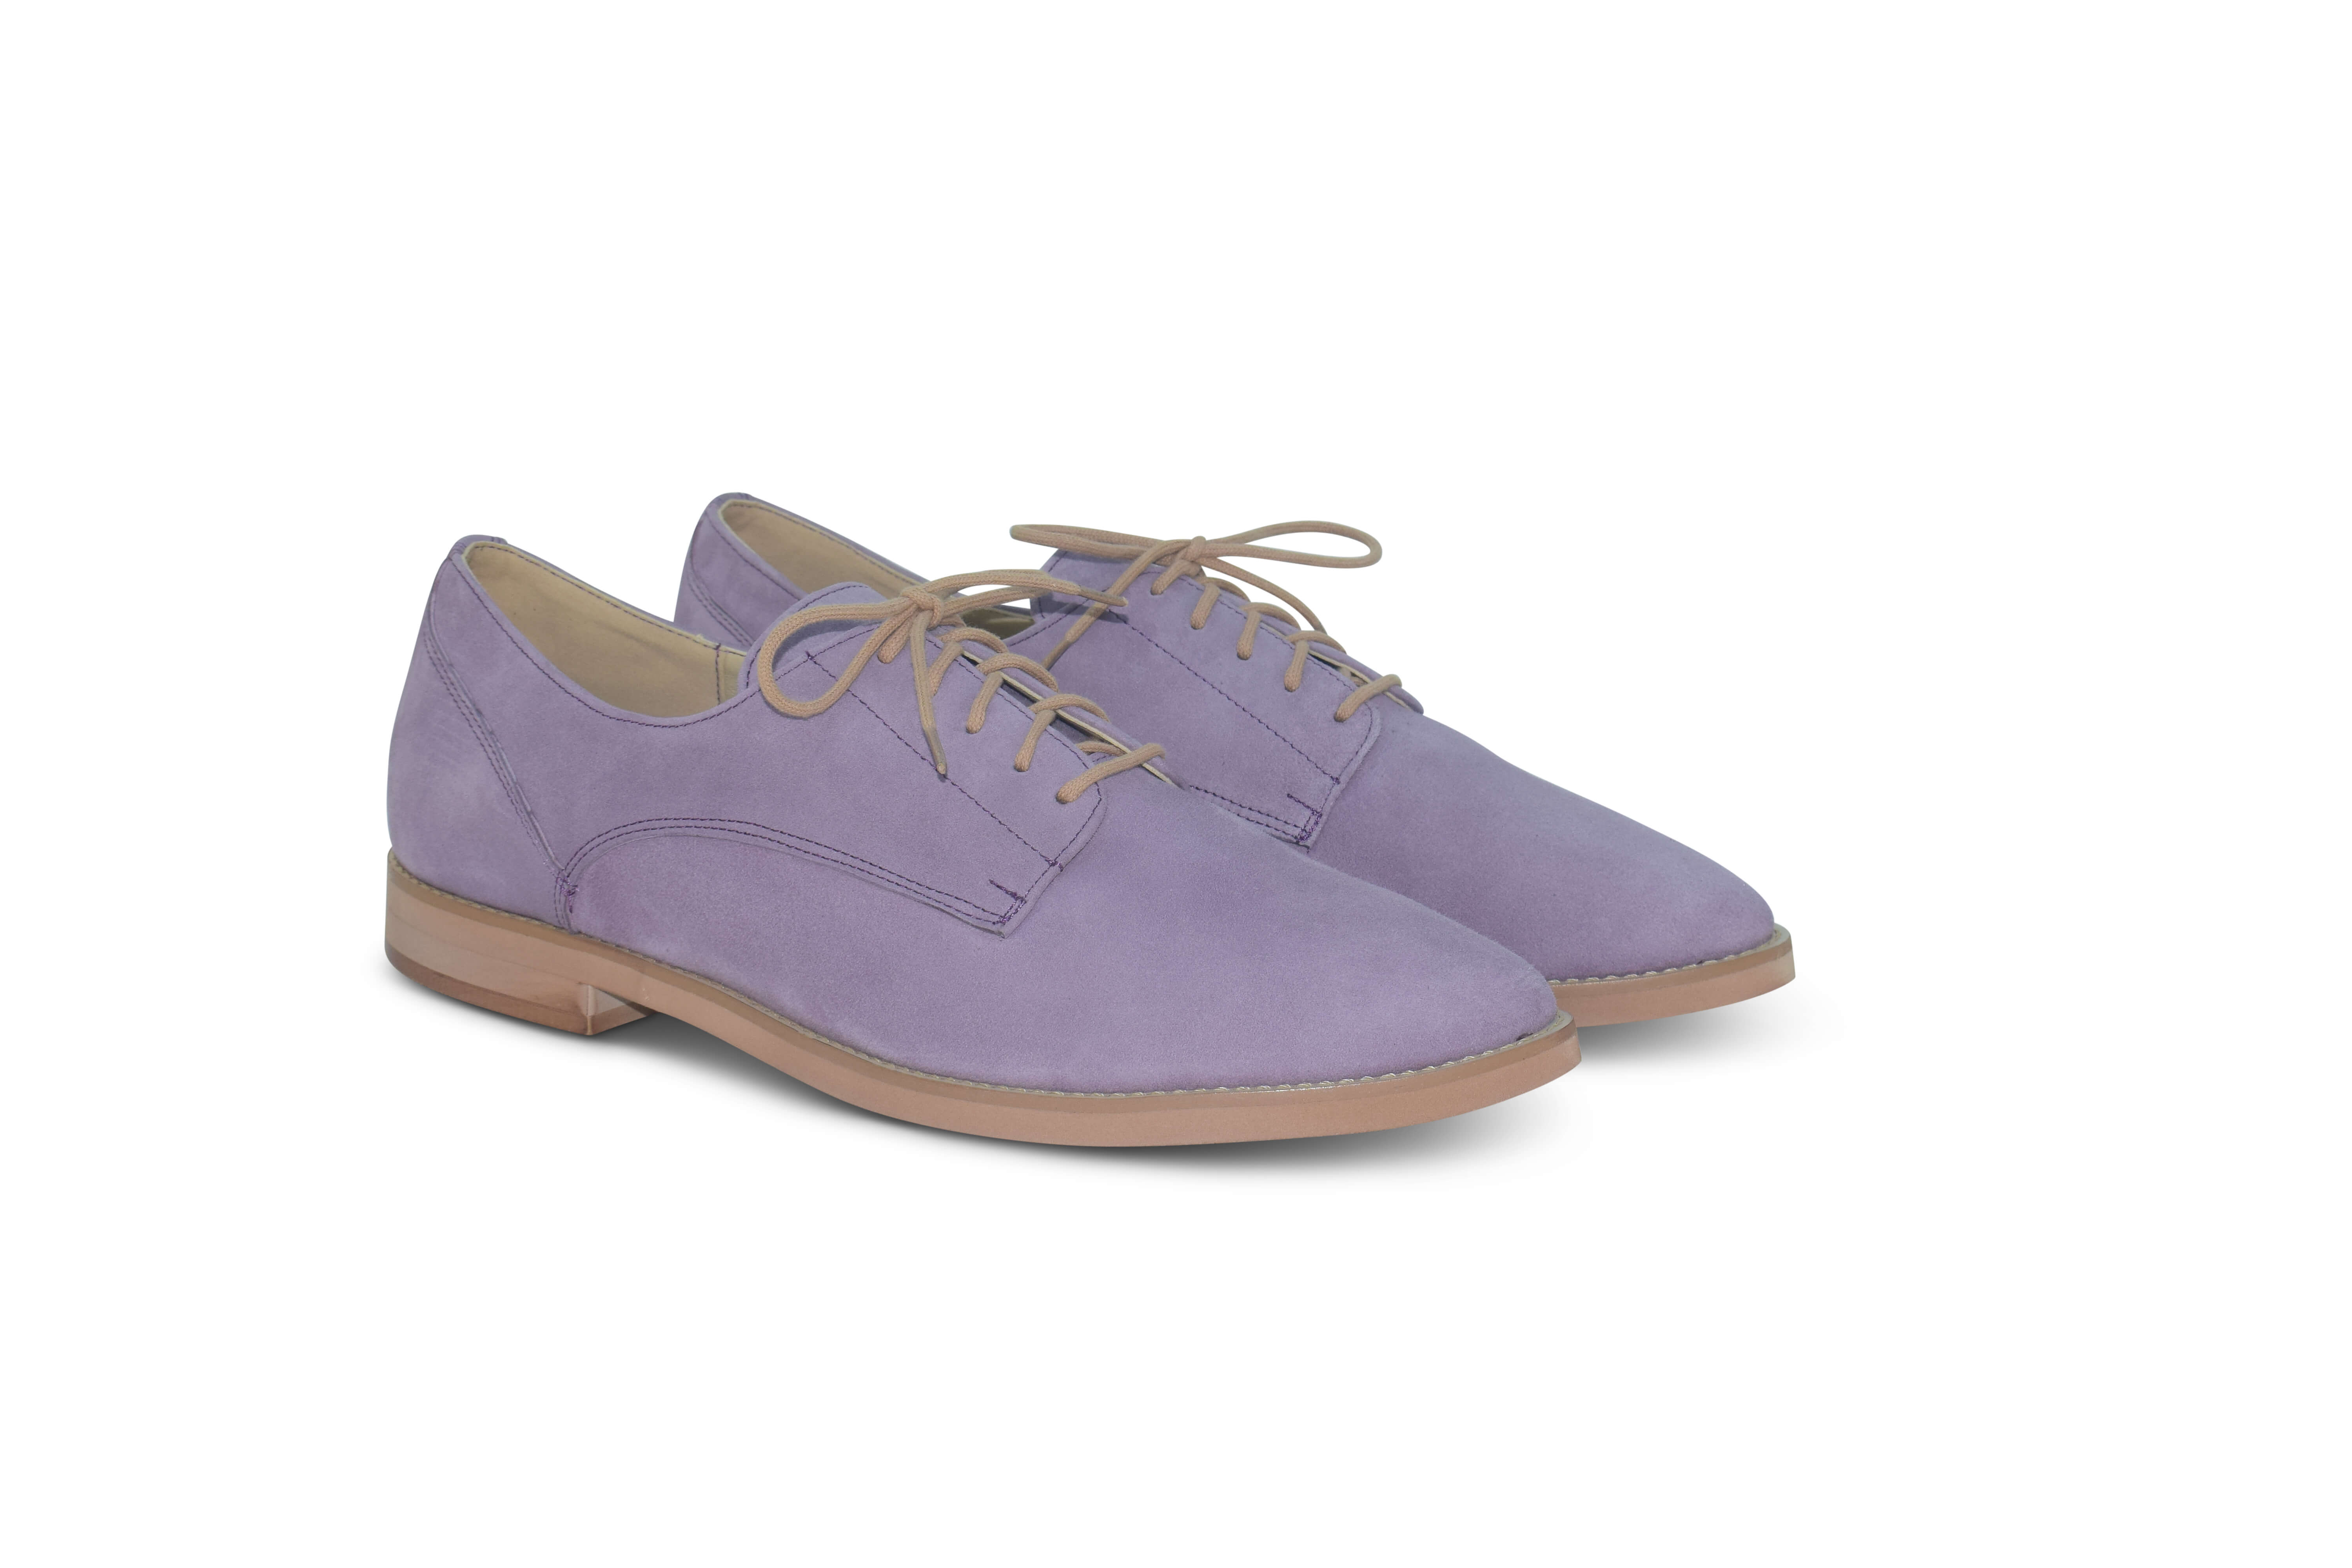 Harriett leather pointed toe Oxfords - lilac